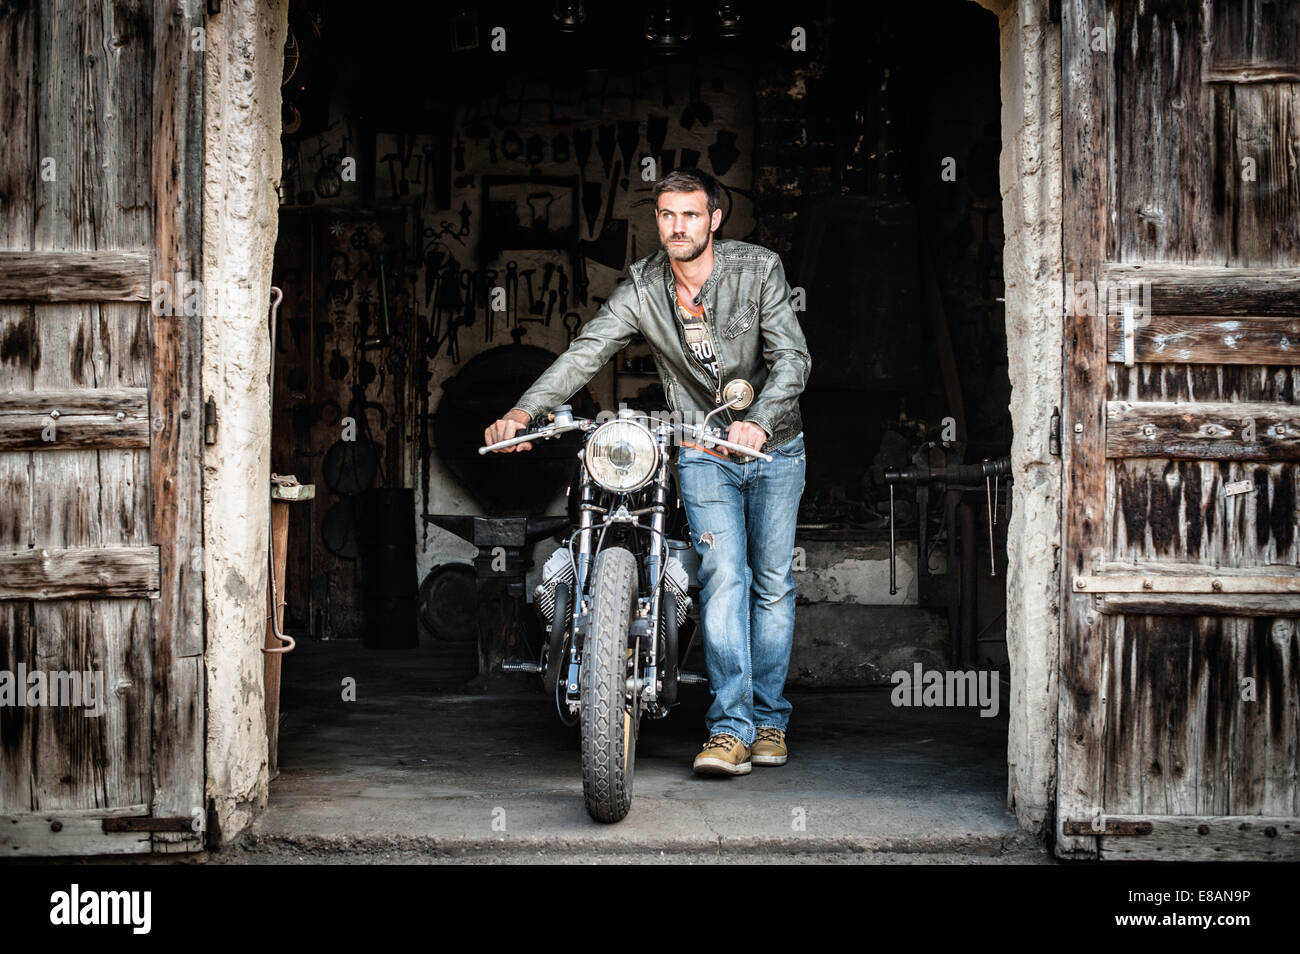 Mid adult man pushing motorcycle out of barn doorway - Stock Image